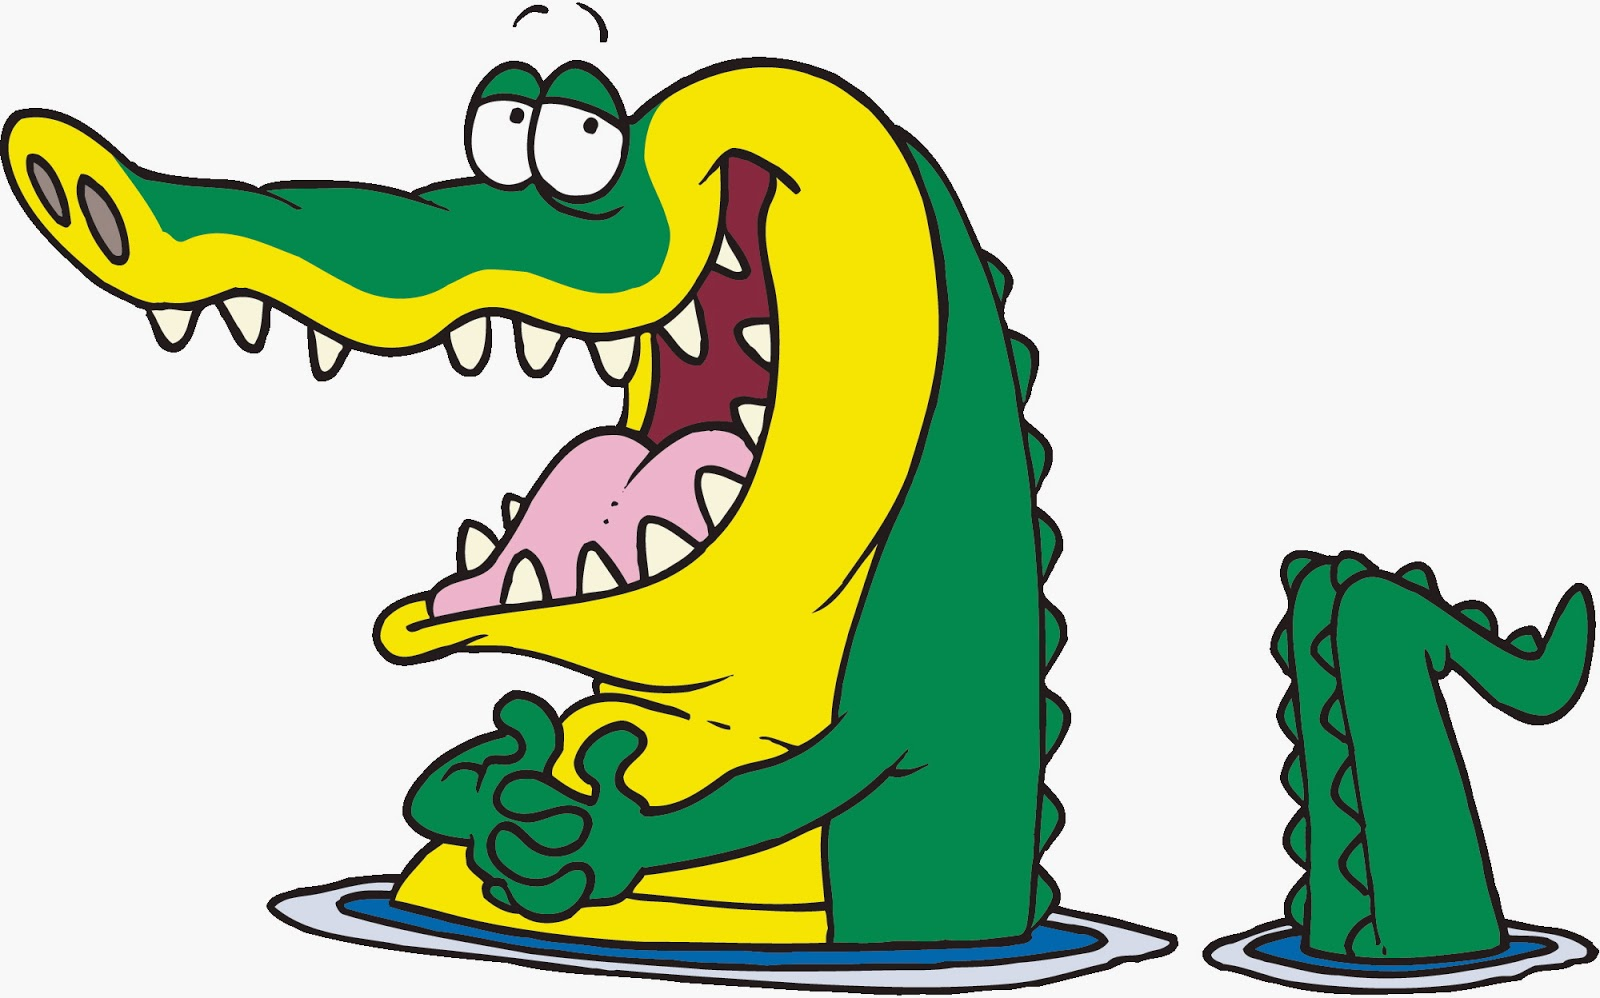 Swamp aligator animals clipart clip art Displaying 19 gt Images For Swamp Alligator Clipart free image clip art